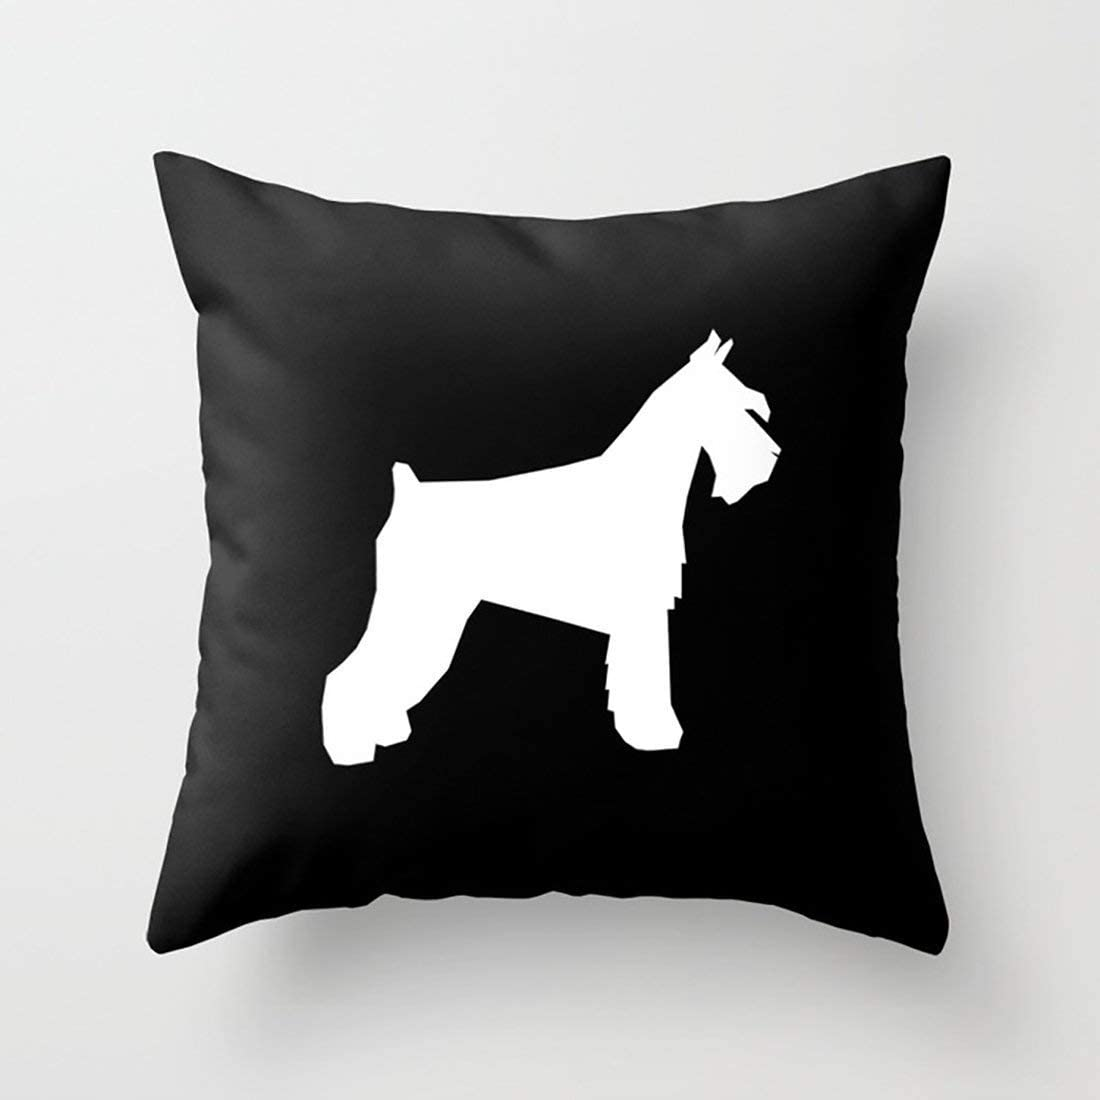 Rdsfhsp Simplicity Australian Cattle Dog in Watercolor Silhouette Cotton Cushion Throw Pillow Cover//Case Sofa Car Bedroom Etc Gifts Cotton 16x16 in